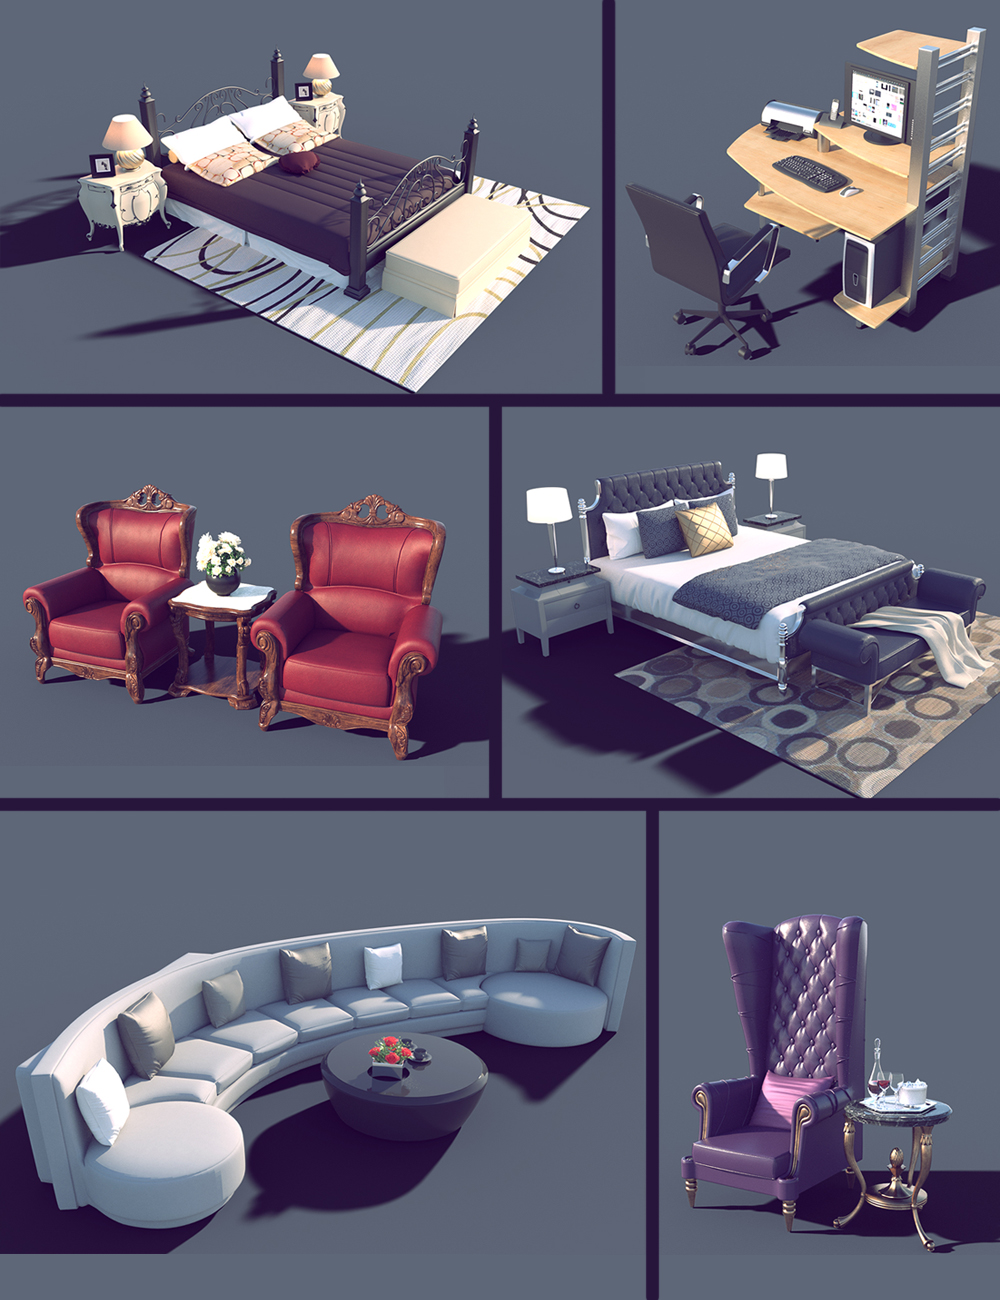 Interior Furniture 02 by: Polish, 3D Models by Daz 3D